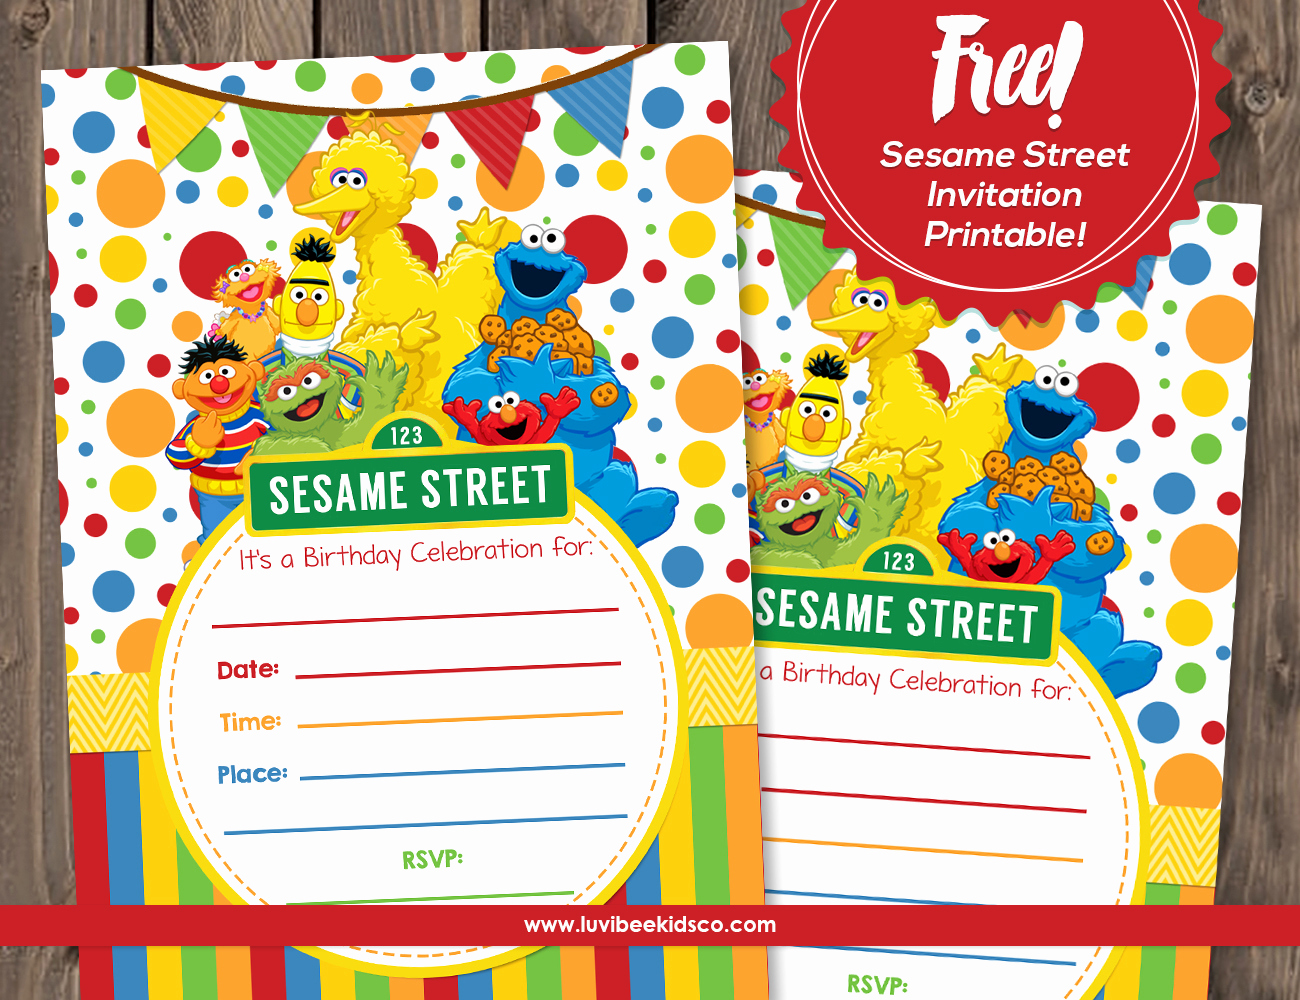 Sesame Street Invitation Template Free Lovely Sesame Street Free Printable Invitation